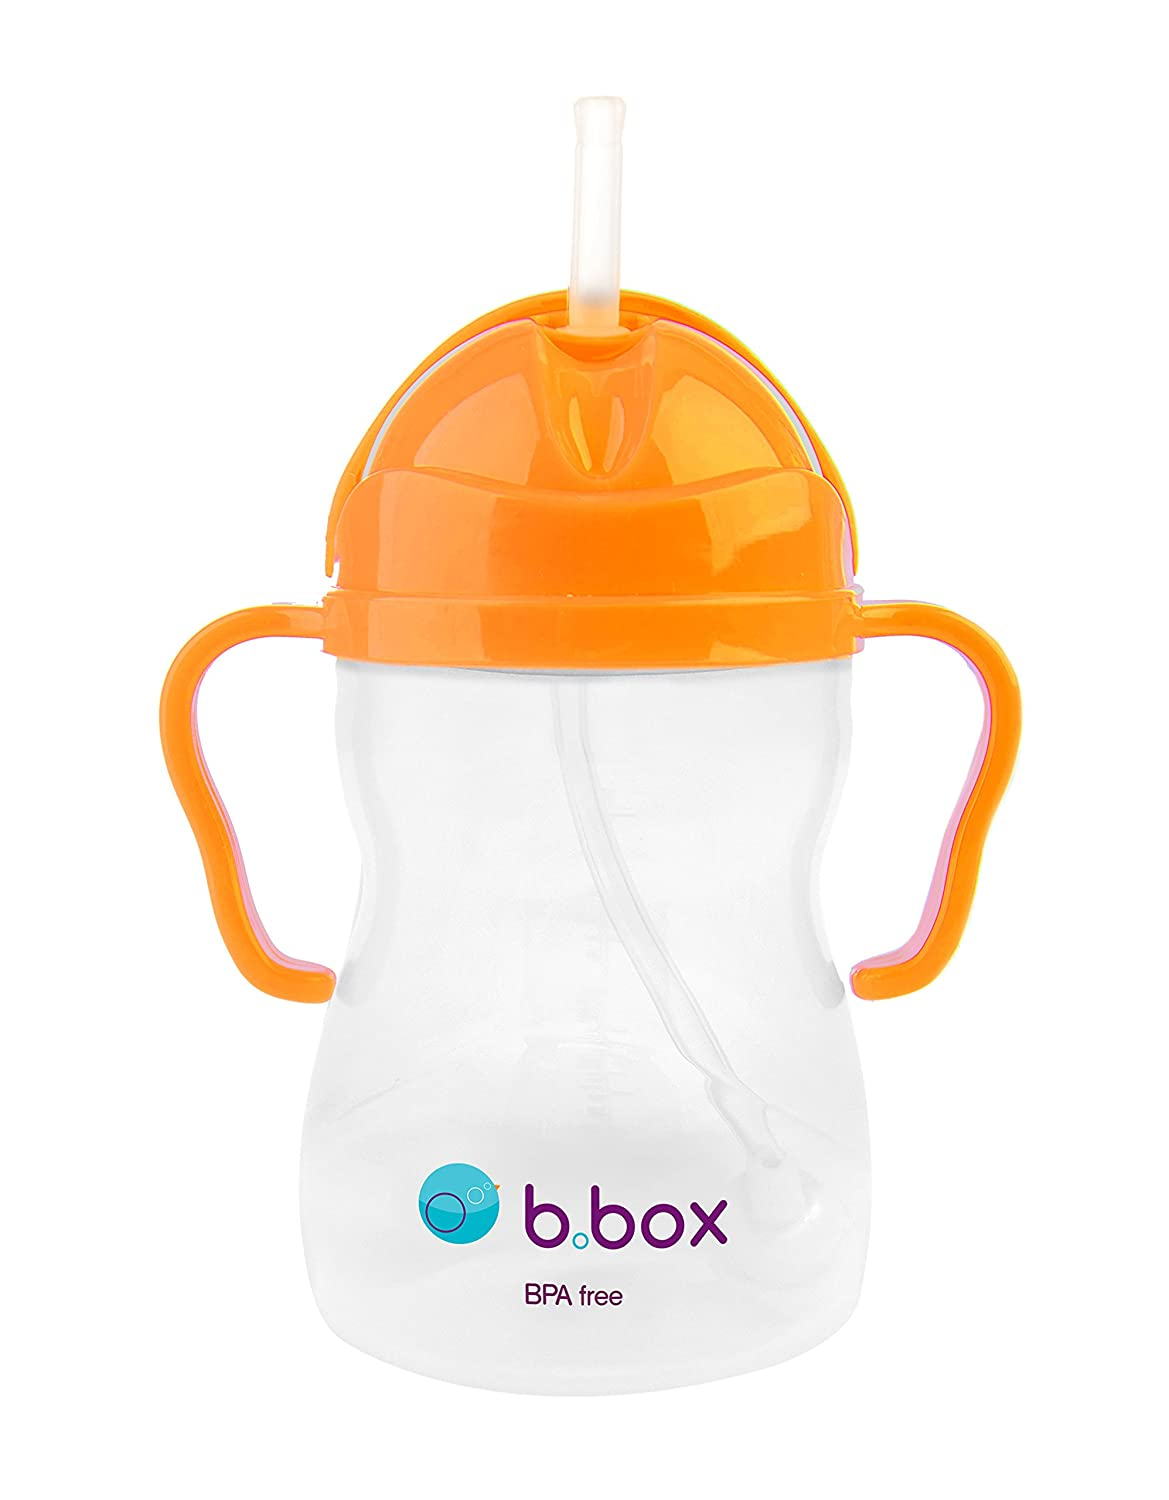 b.box straw Sippy Cup - Orange Zing - Neon Edition - 8 oz B. Box 9319064003812